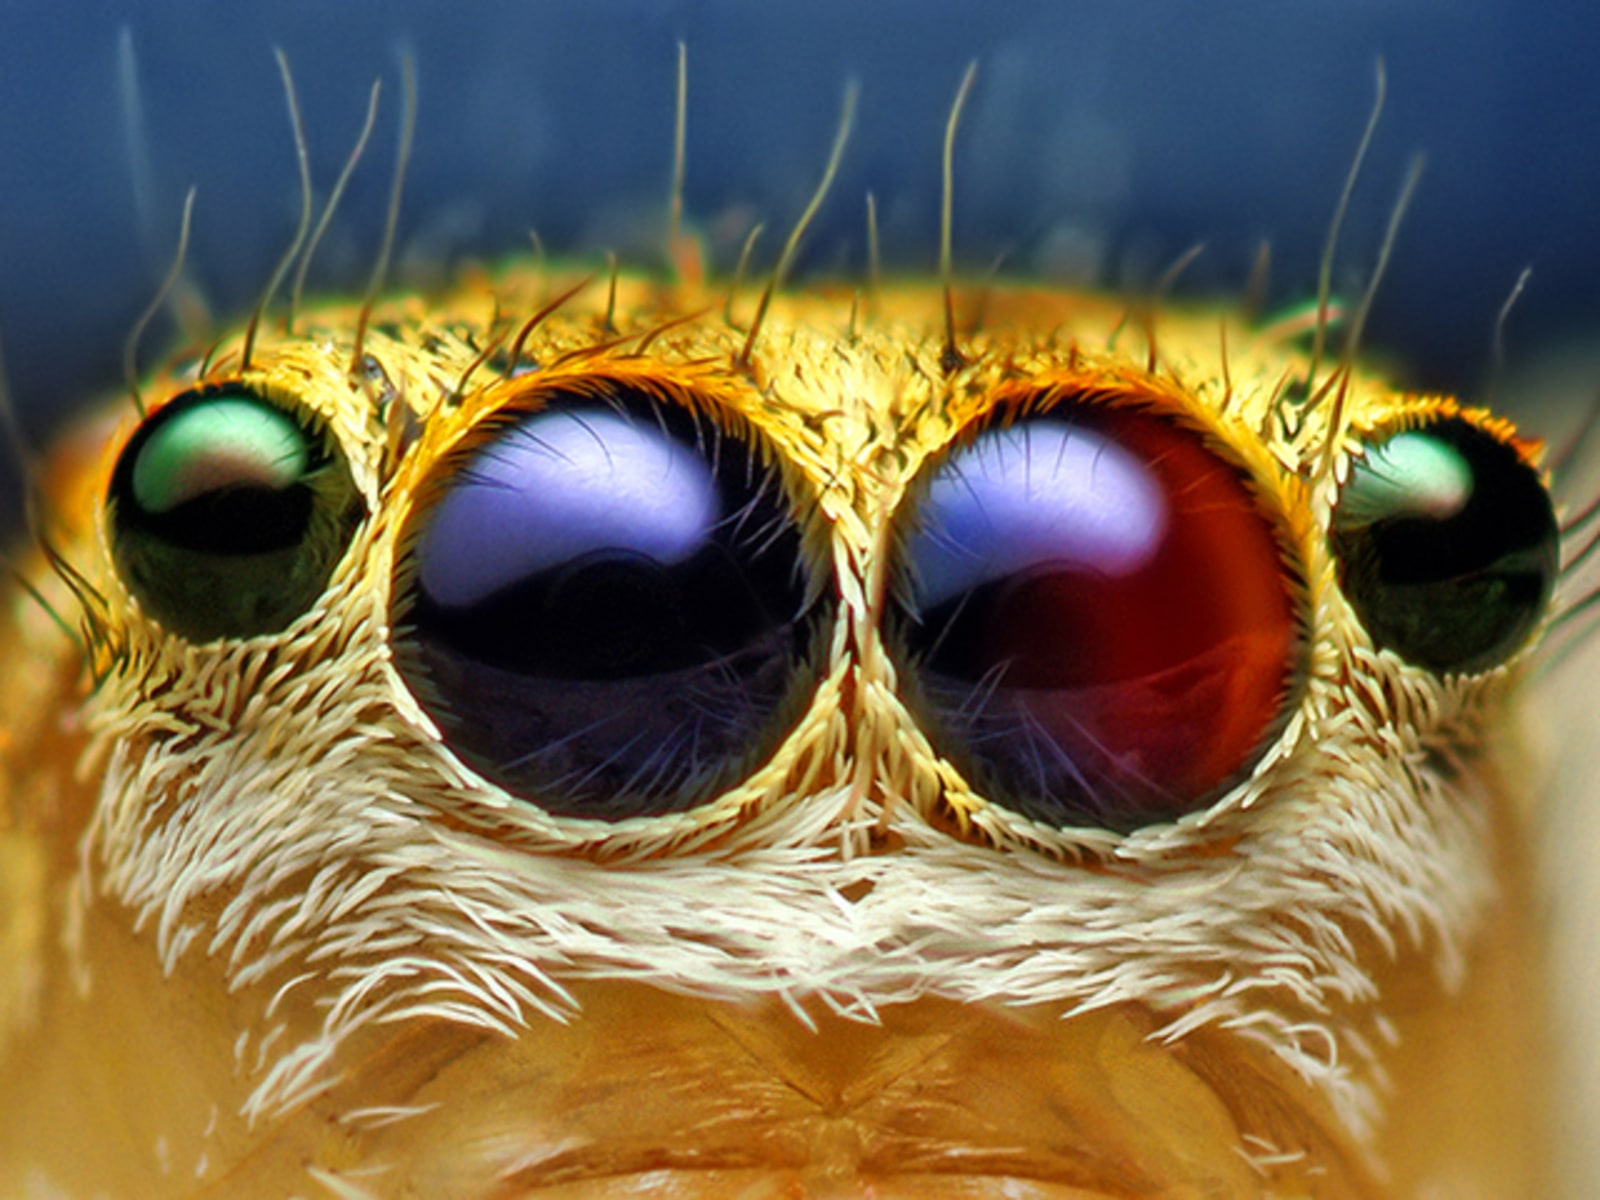 Image: Female Jumping Spider